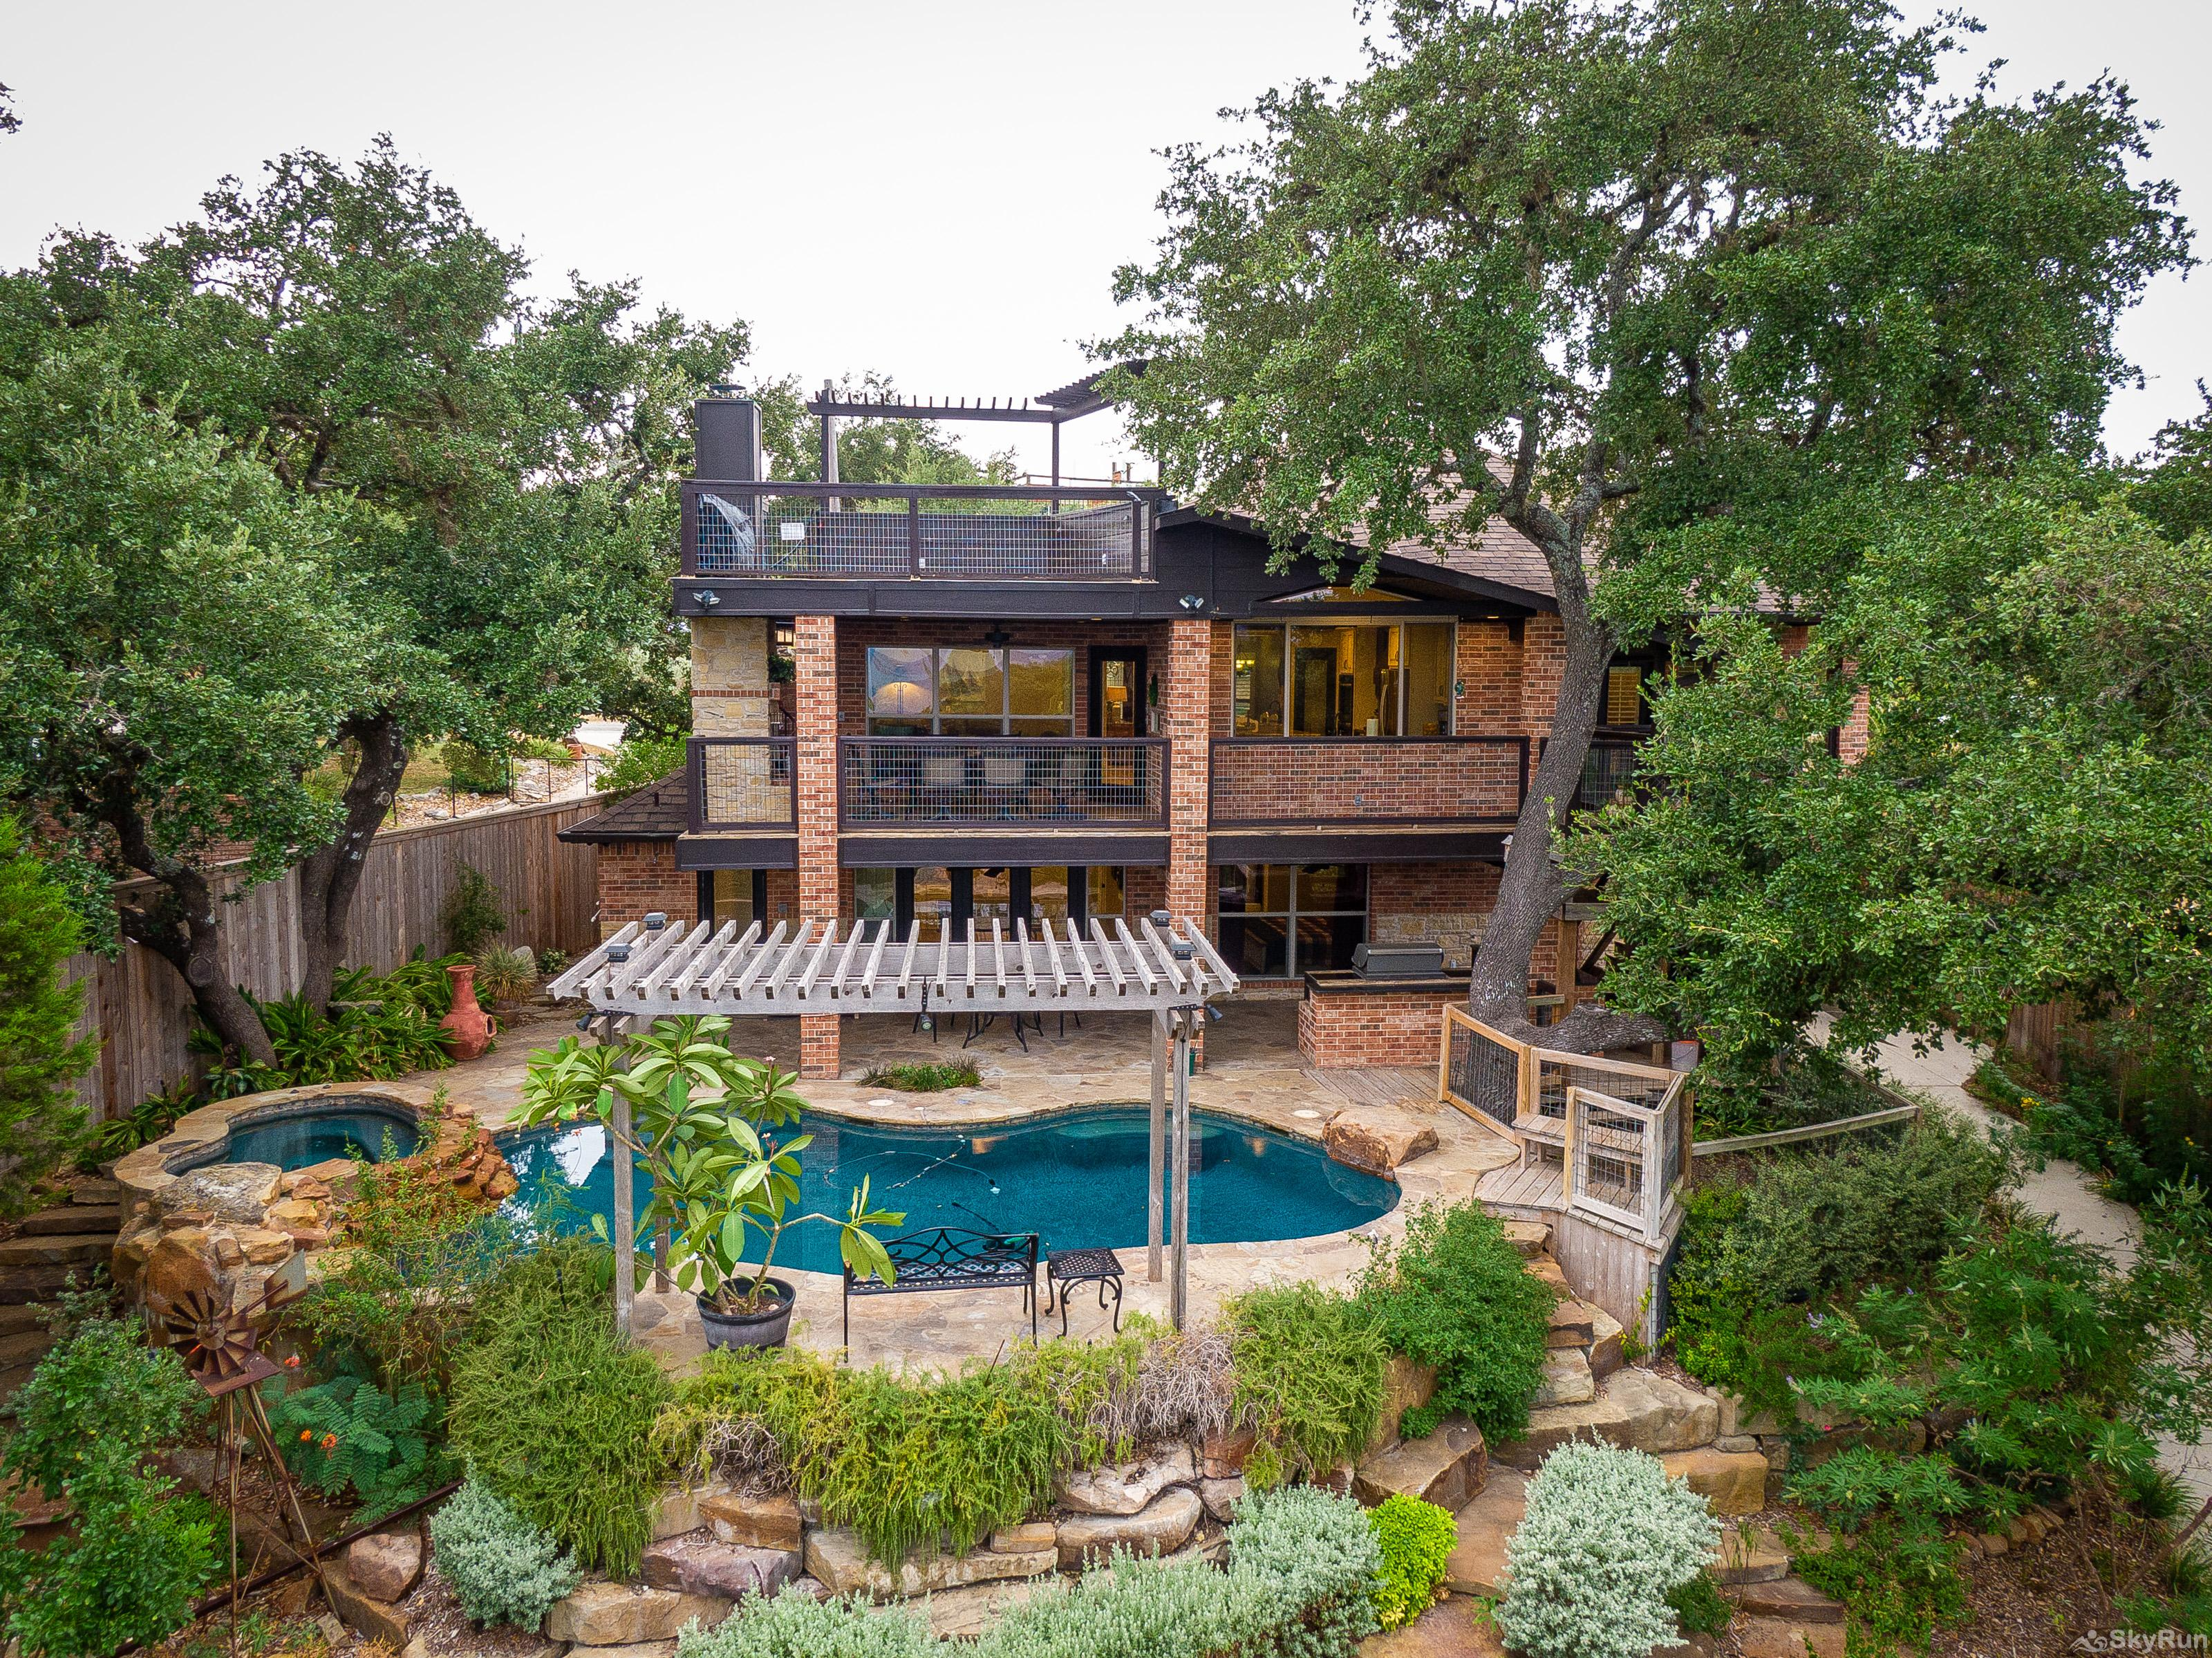 HUMMINGBIRD HIDEAWAY Backyard oasis with swimming pool, deck, and outdoor kitchen